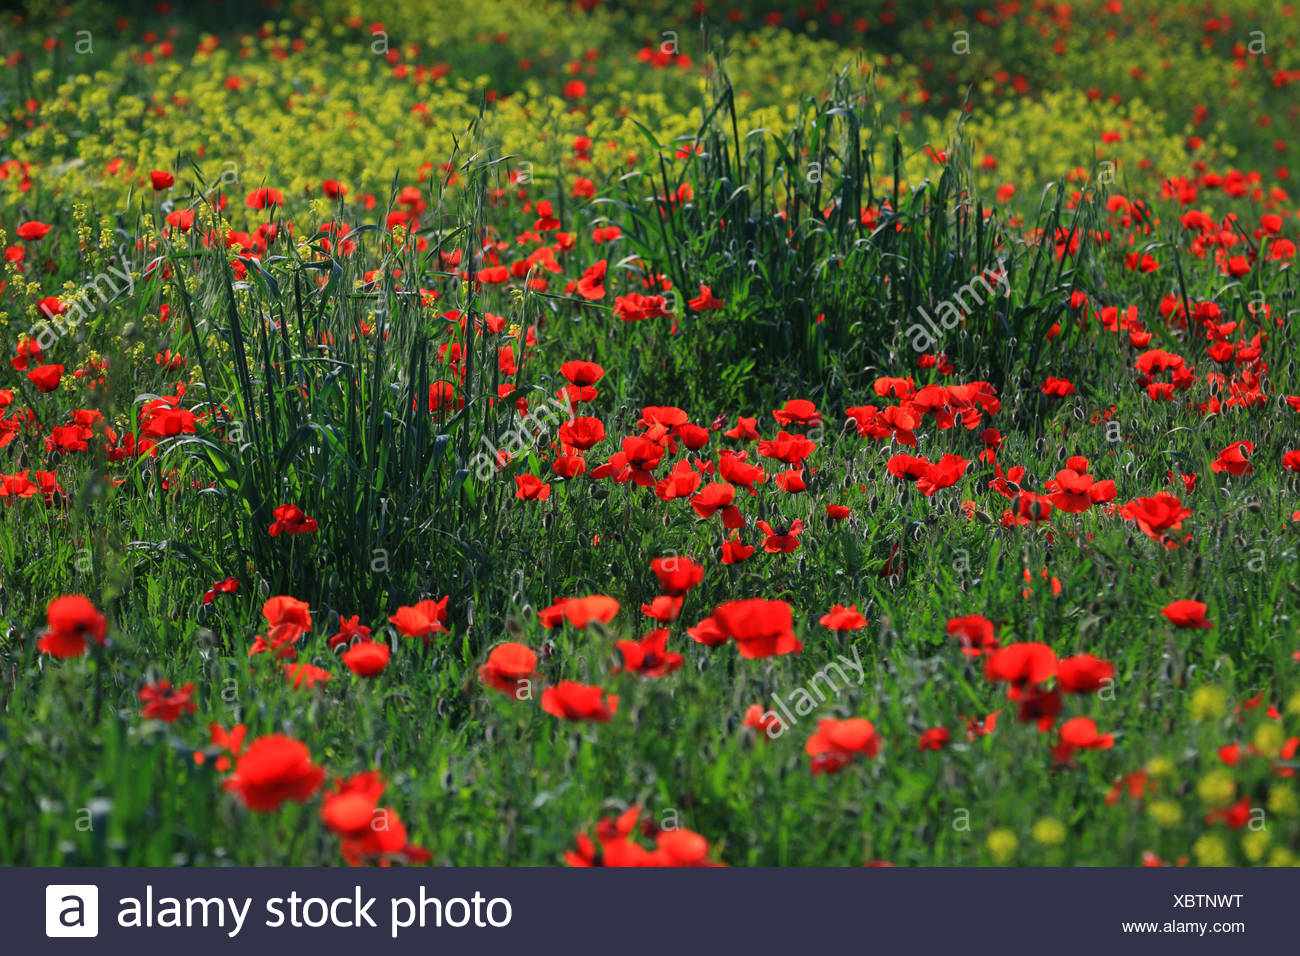 common poppy, corn poppy, red poppy (Papaver rhoeas), red and yellow blooming segetal weeds, Italy Stock Photo